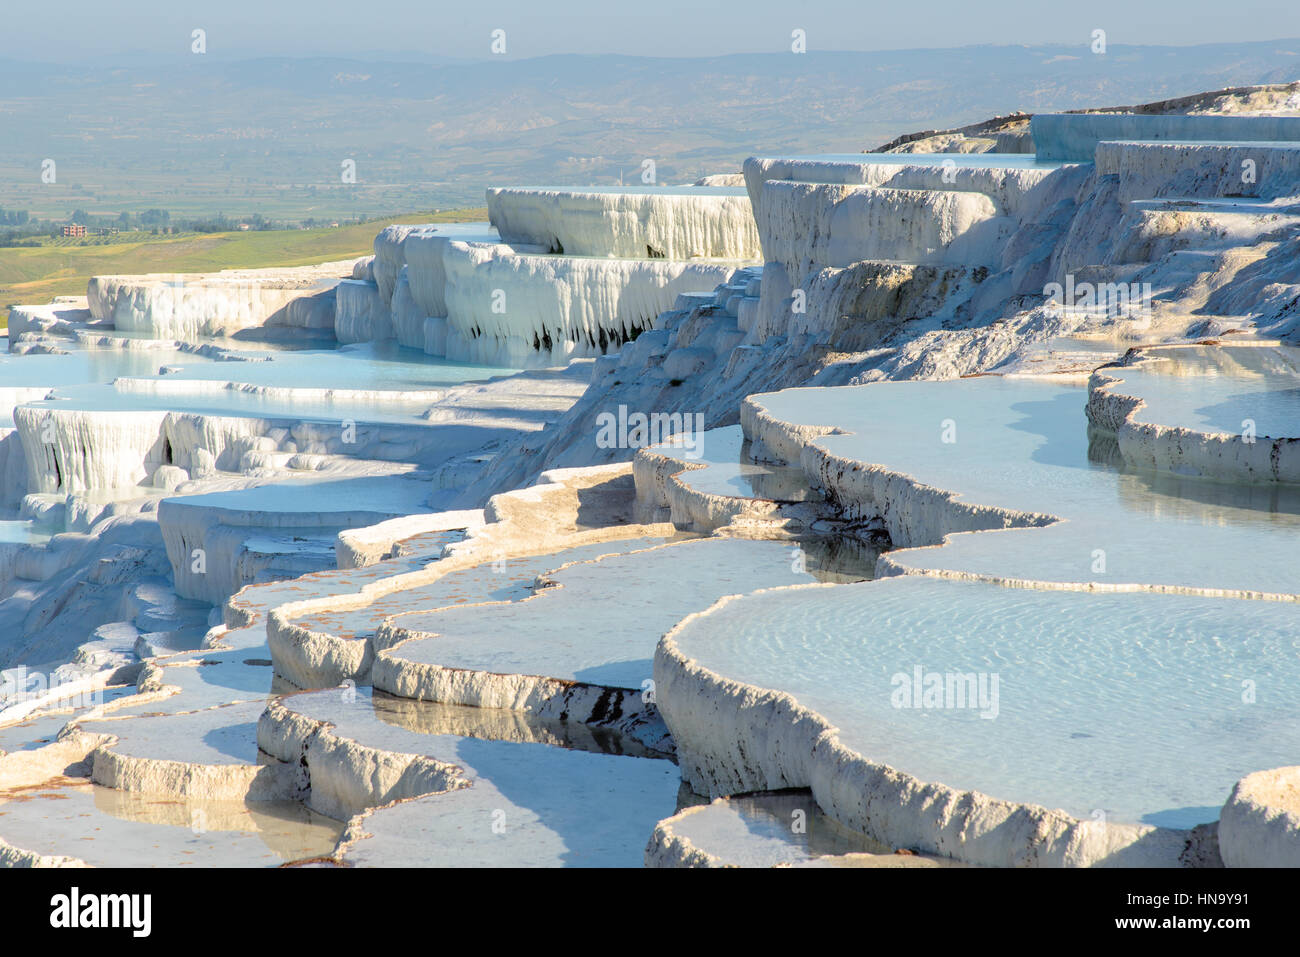 The enchanting pools of Pamukkale in Turkey. Pamukkale contains hot springs and travertines, terraces of carbonate - Stock Image